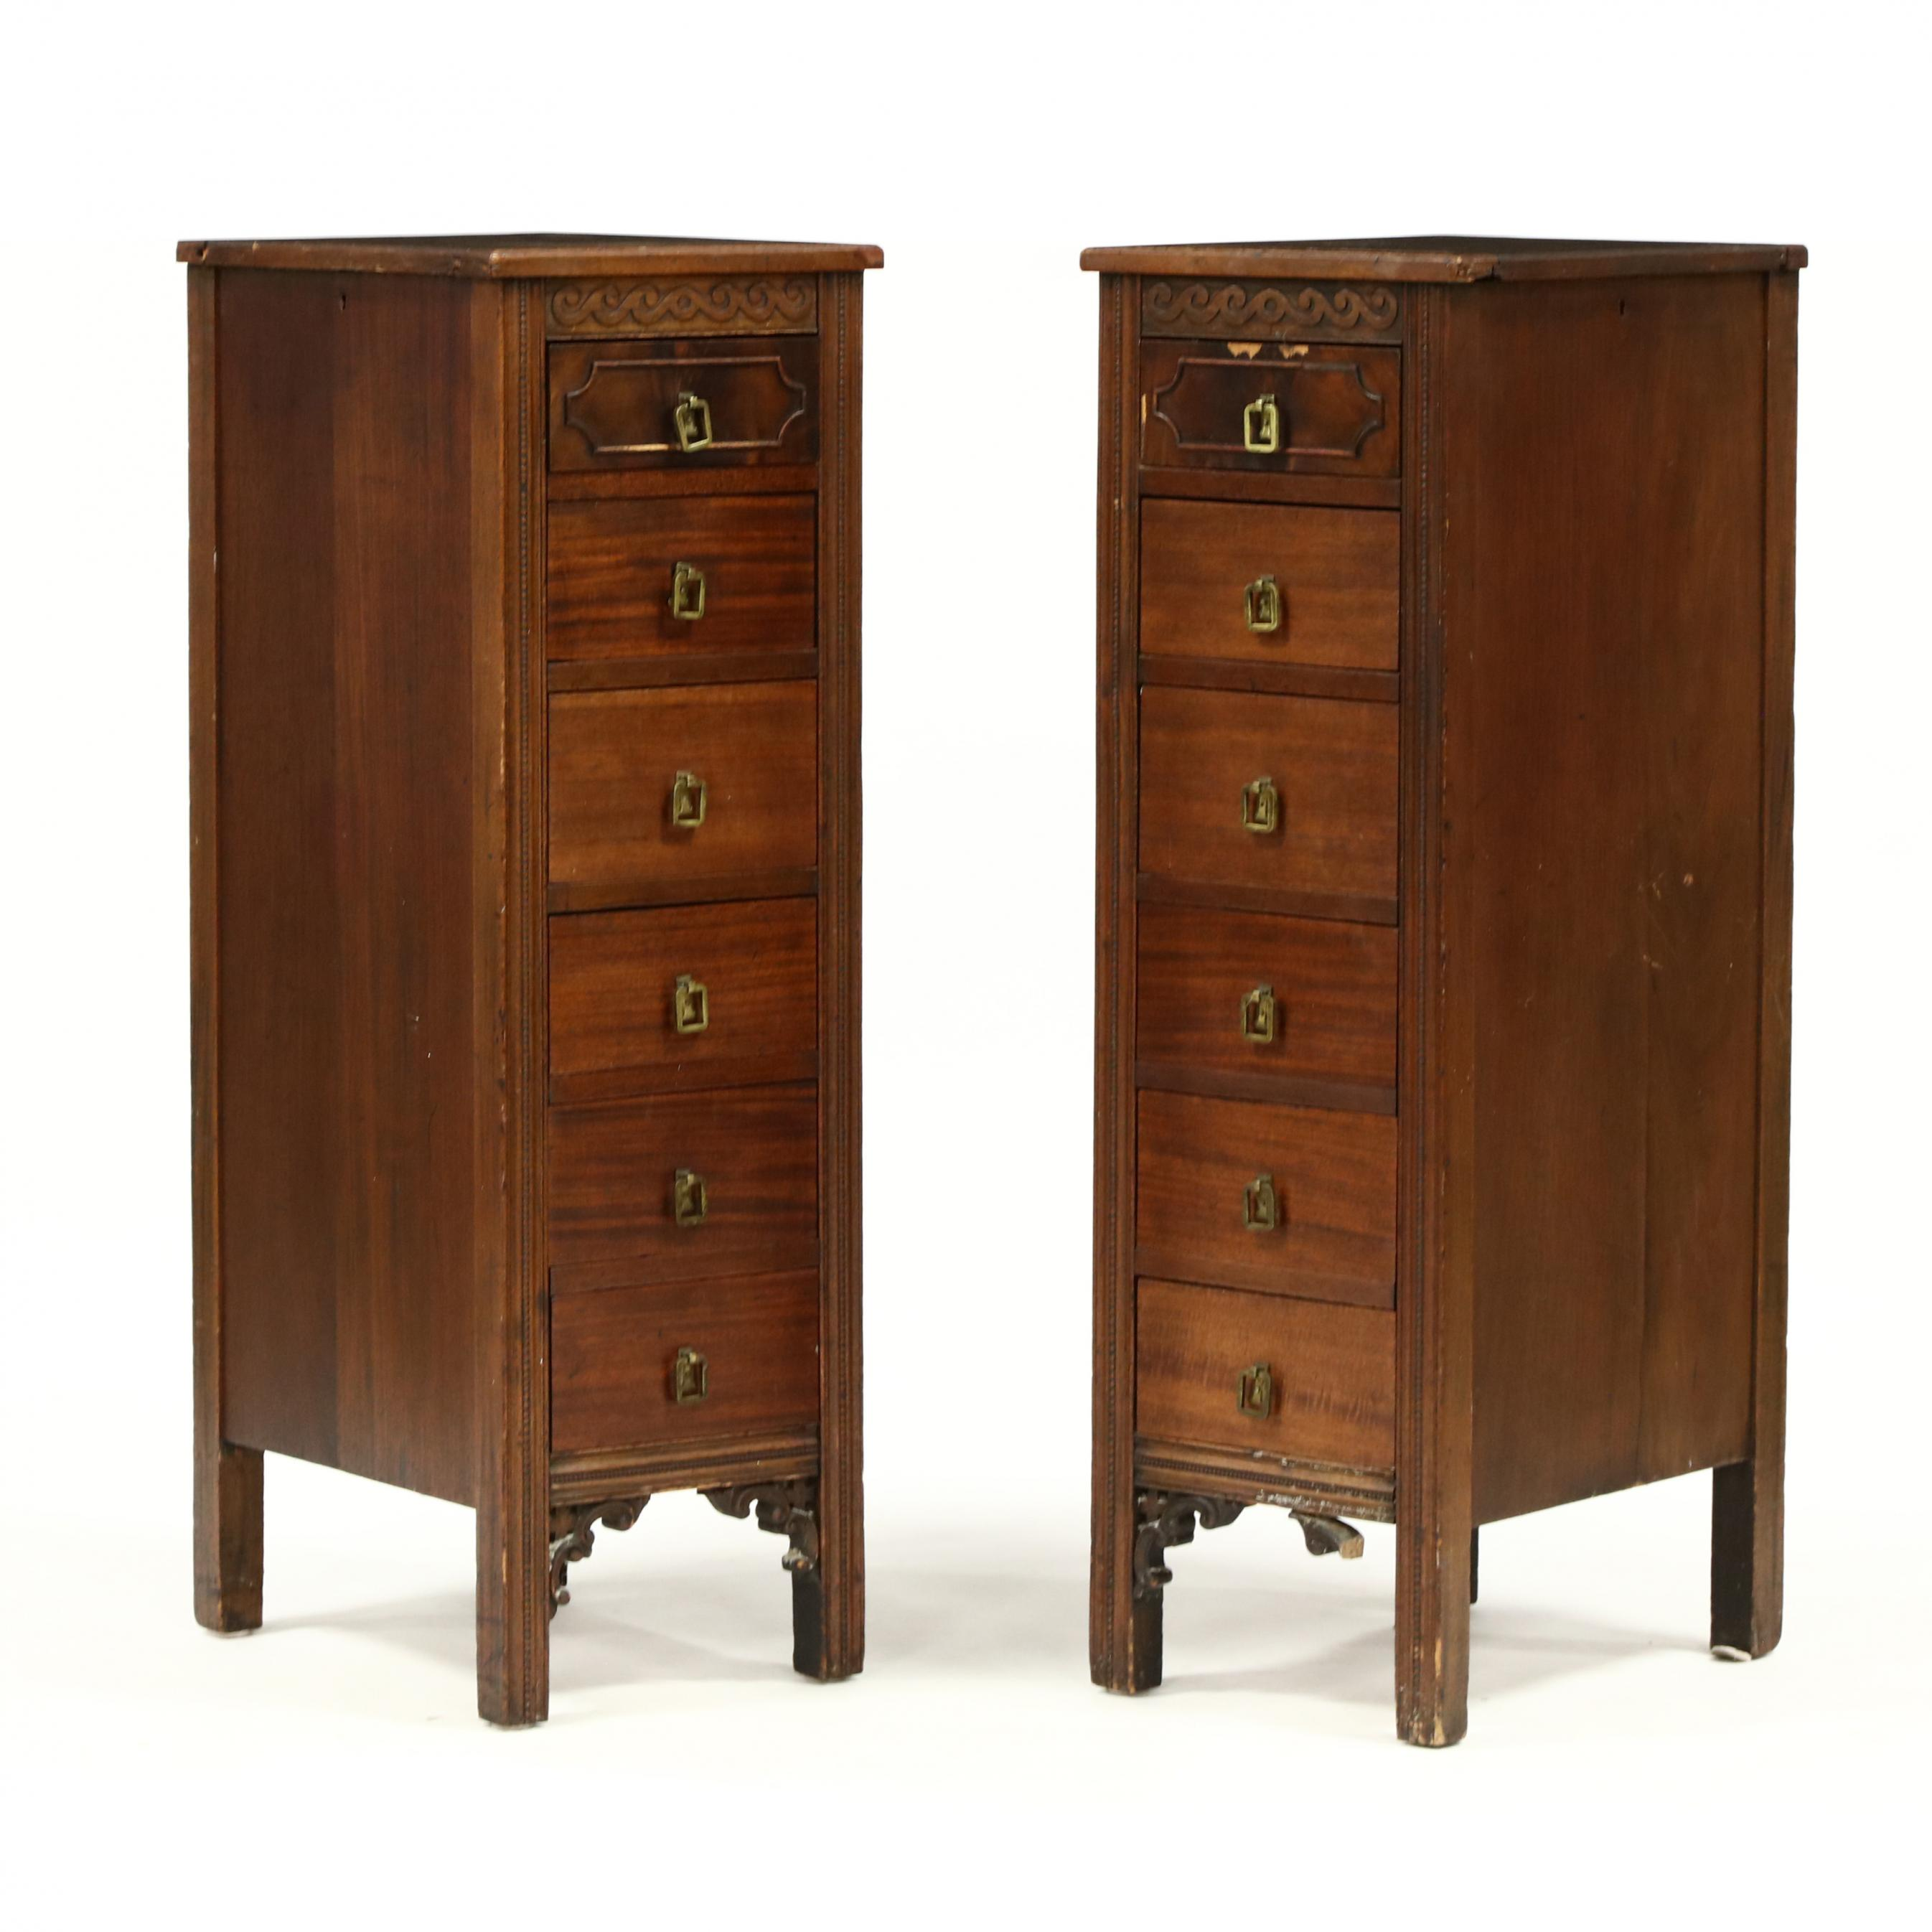 pair-of-tall-mahogany-lingerie-chests